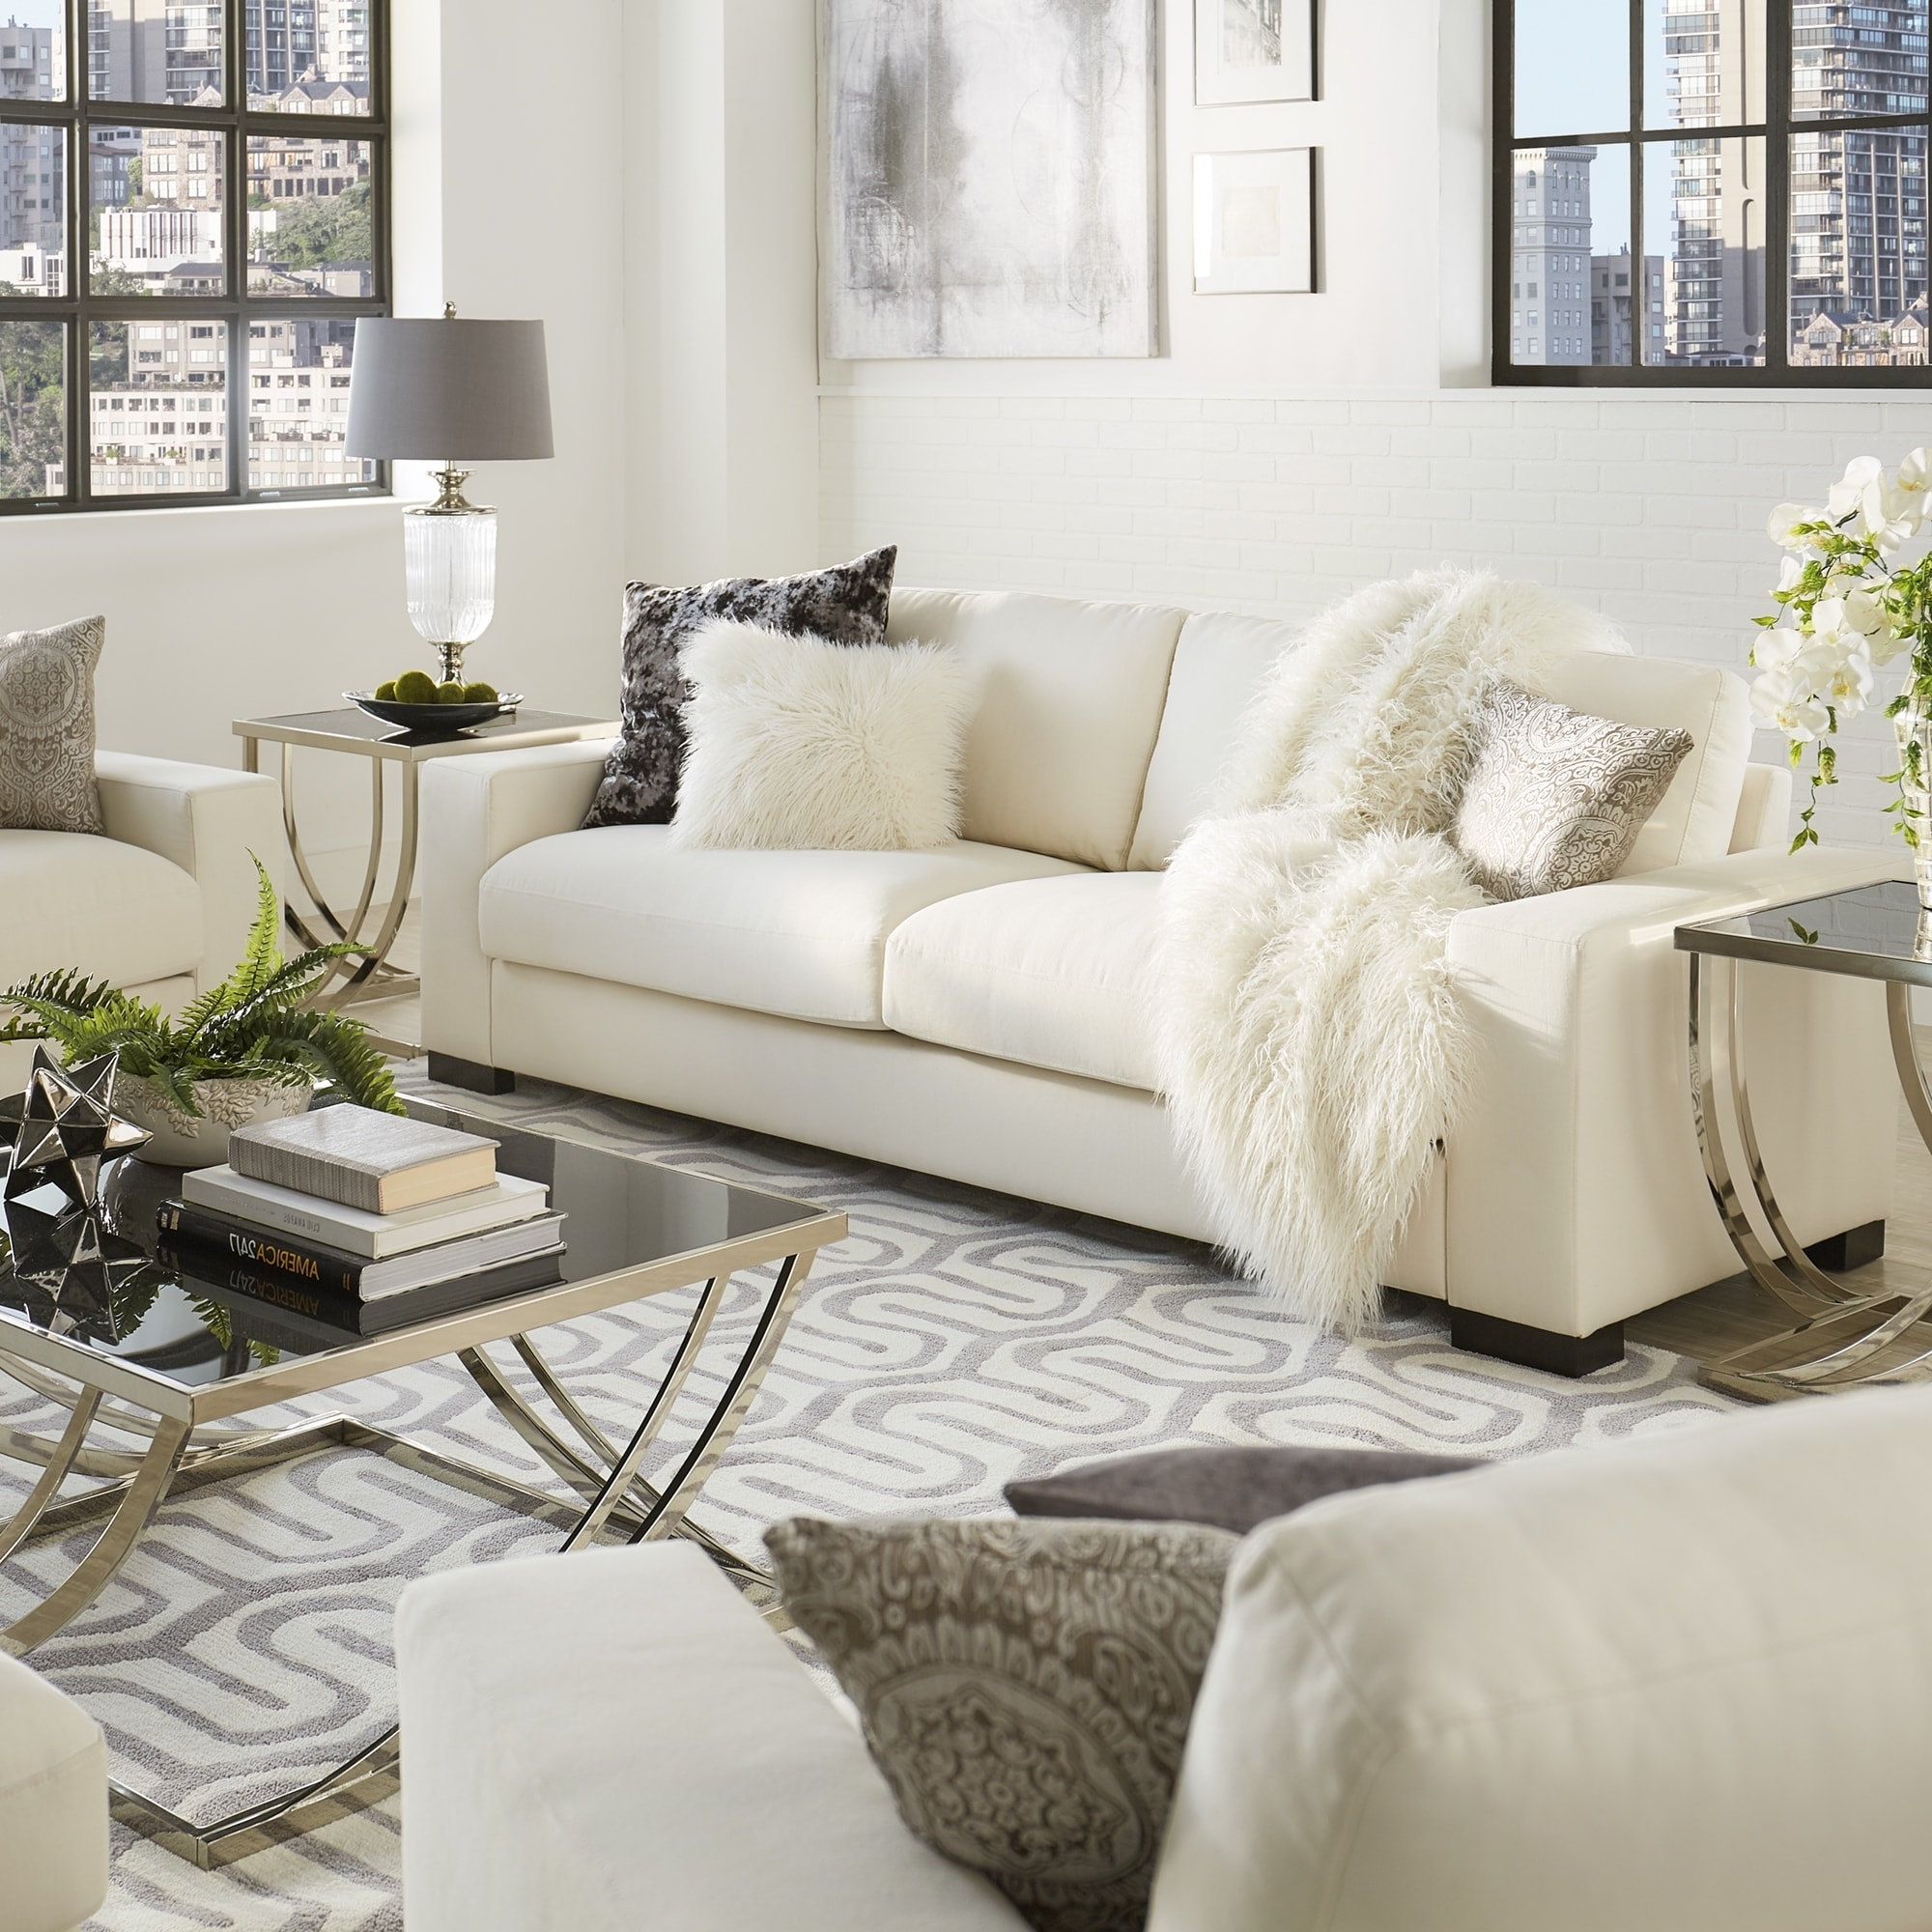 Lionel Modern White Fabric Down Filled Sofainspire Q Artisan Throughout Favorite Down Filled Sofas (View 10 of 15)